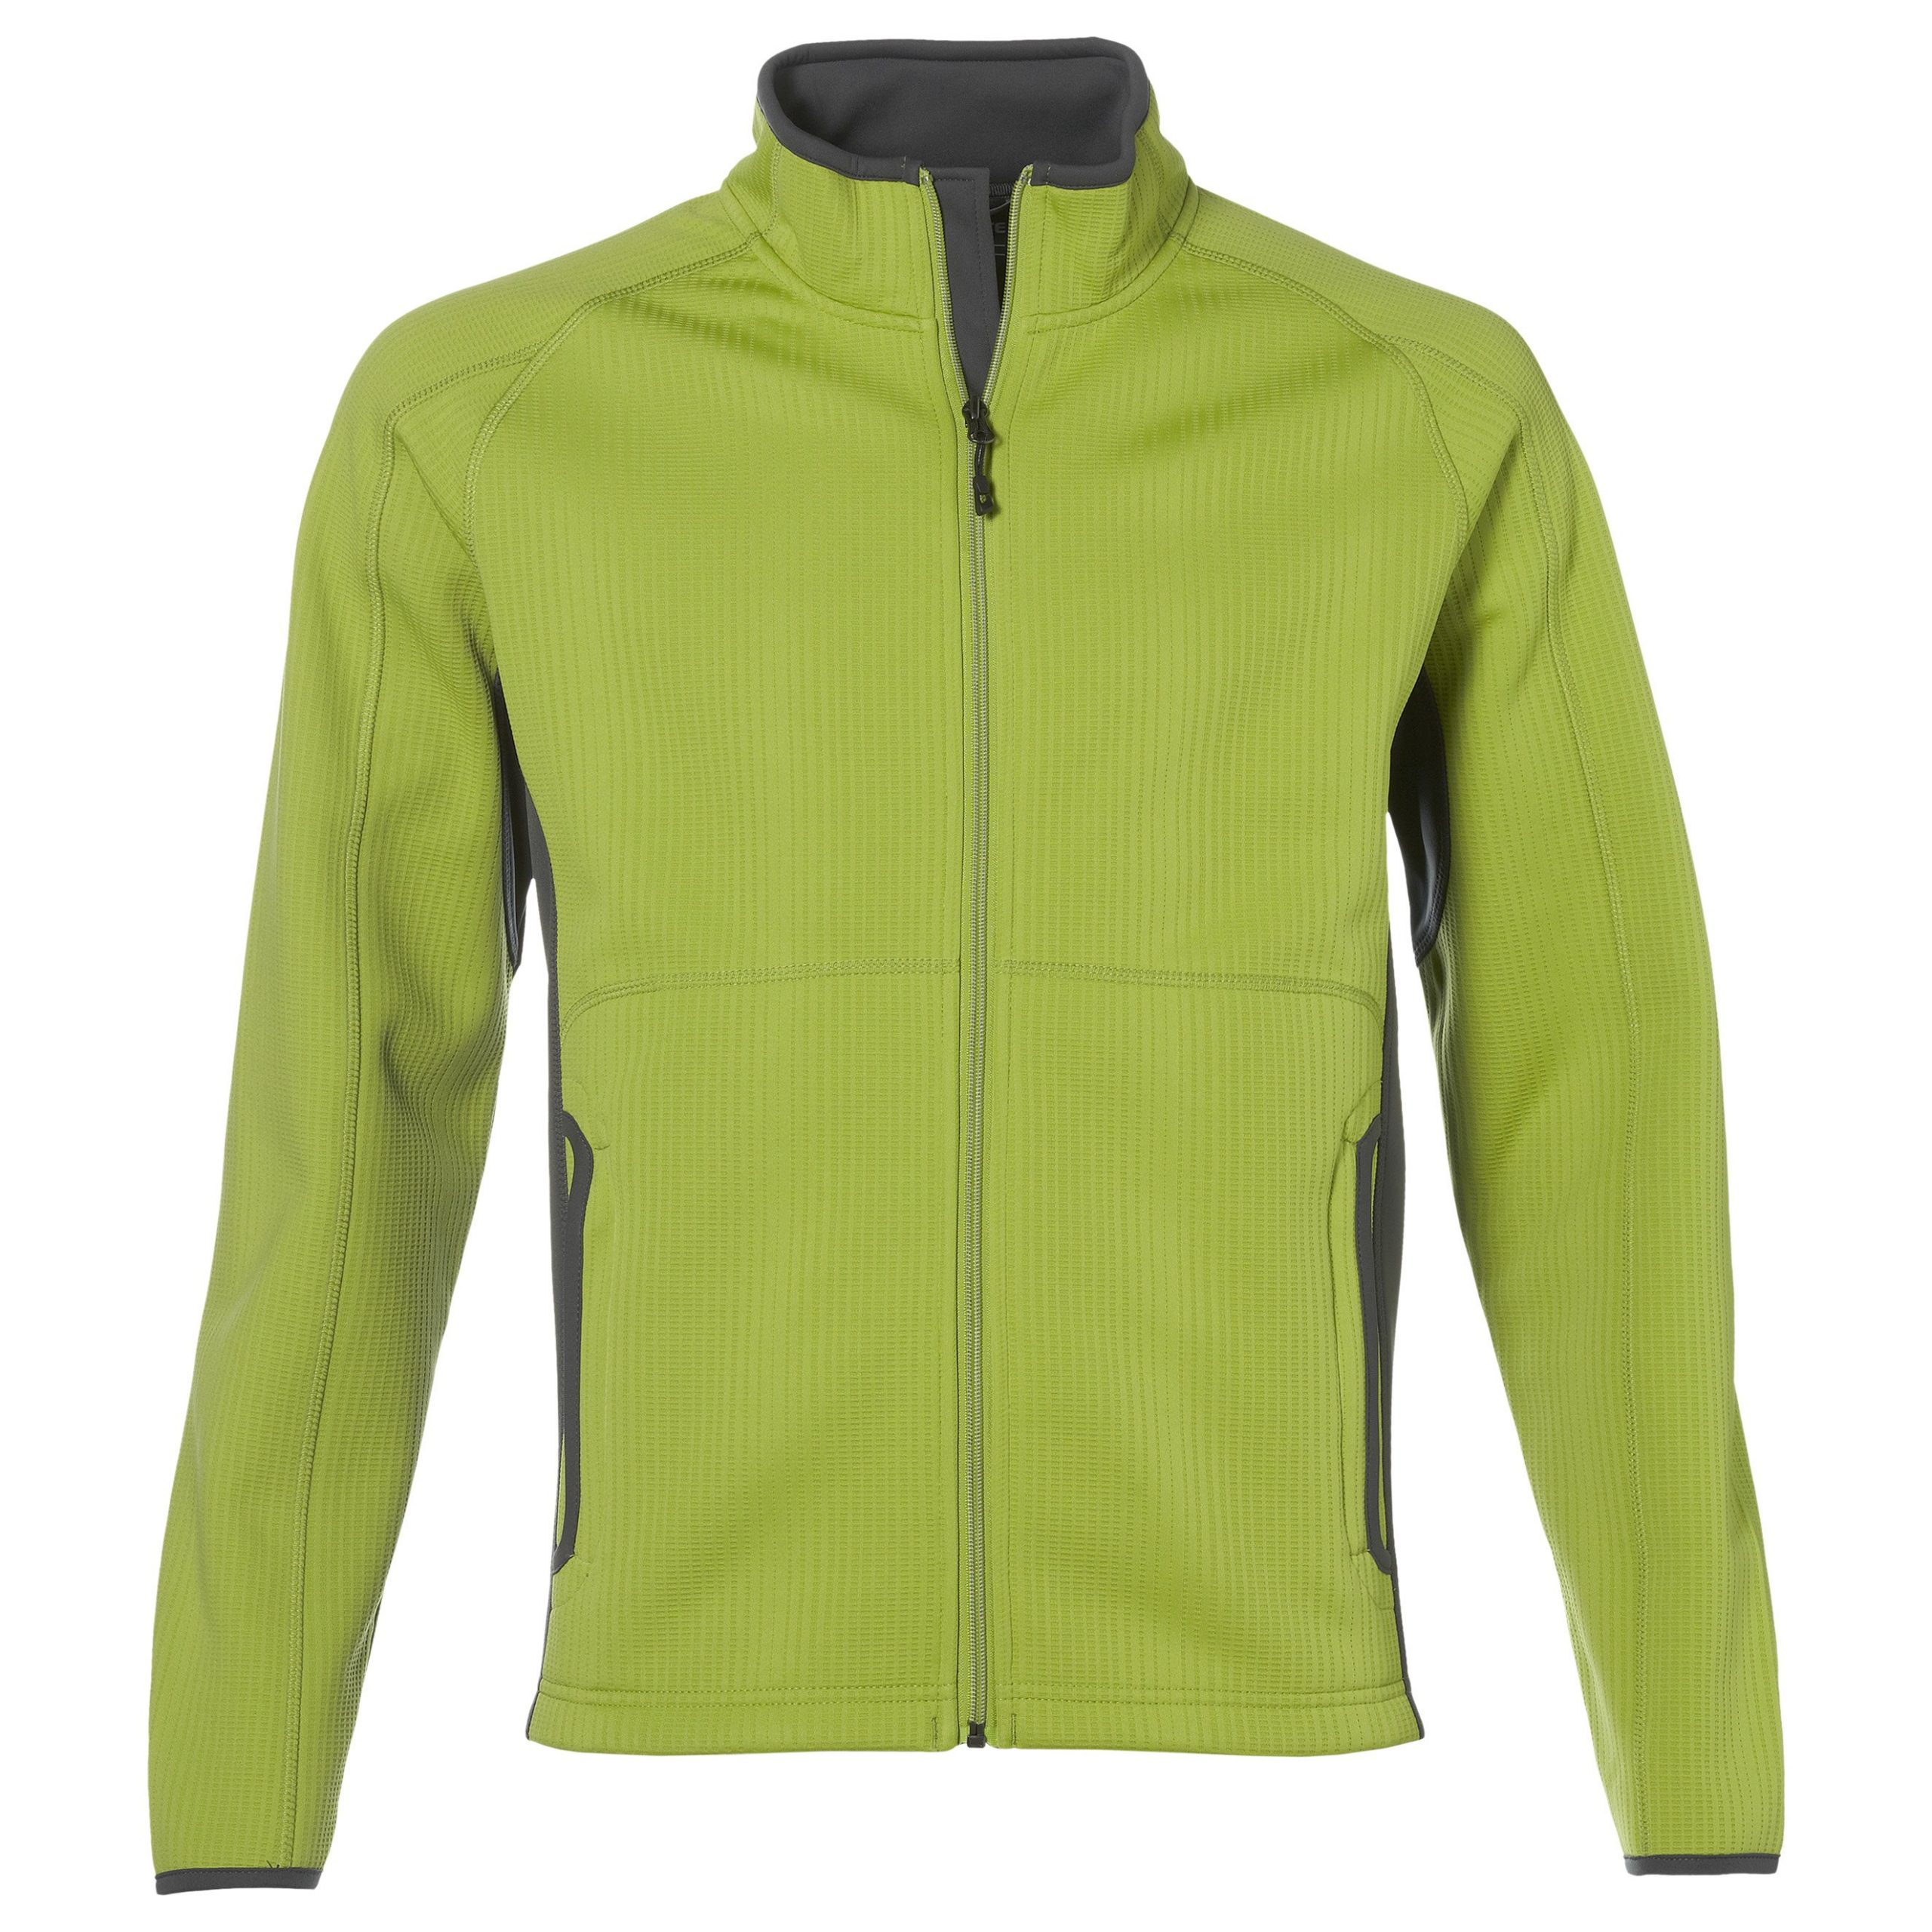 Mens Ferno Bonded Knit Jacket - Lime Only